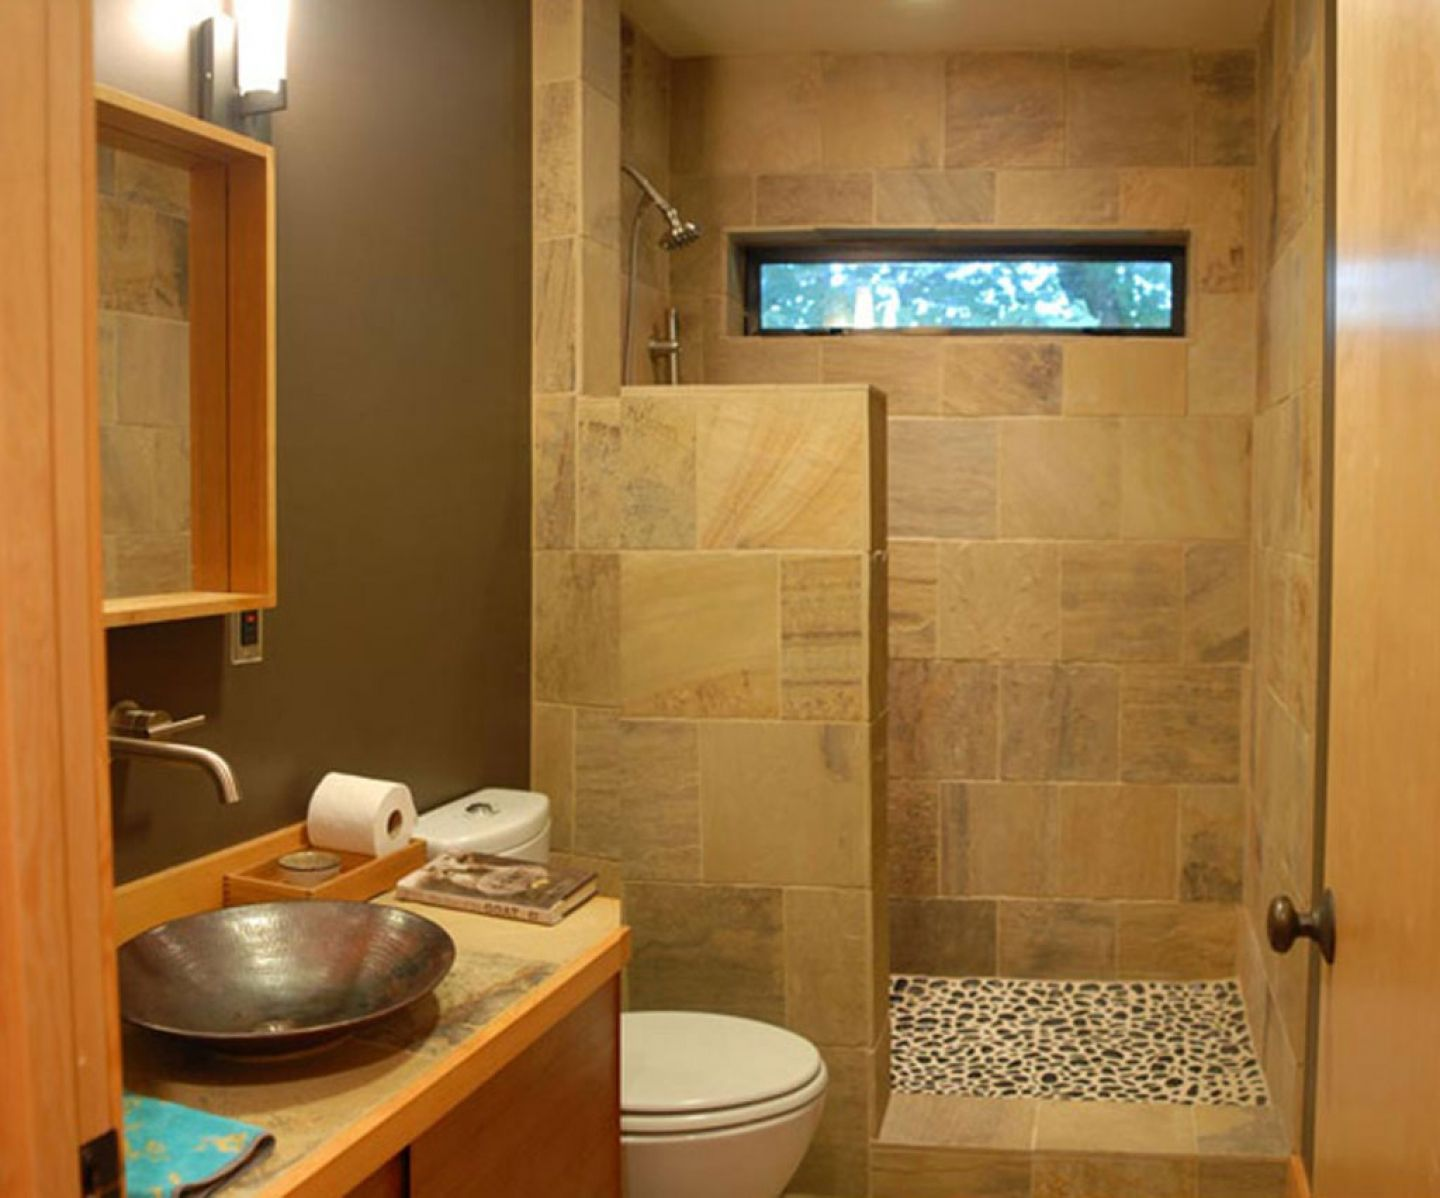 bathroom small bathroom design ideas white wall ceramic tiles floor plans wood brown wooden cabinet black toilet closet bathub shower mirror glass windows - Small Bathrooms Design Ideas